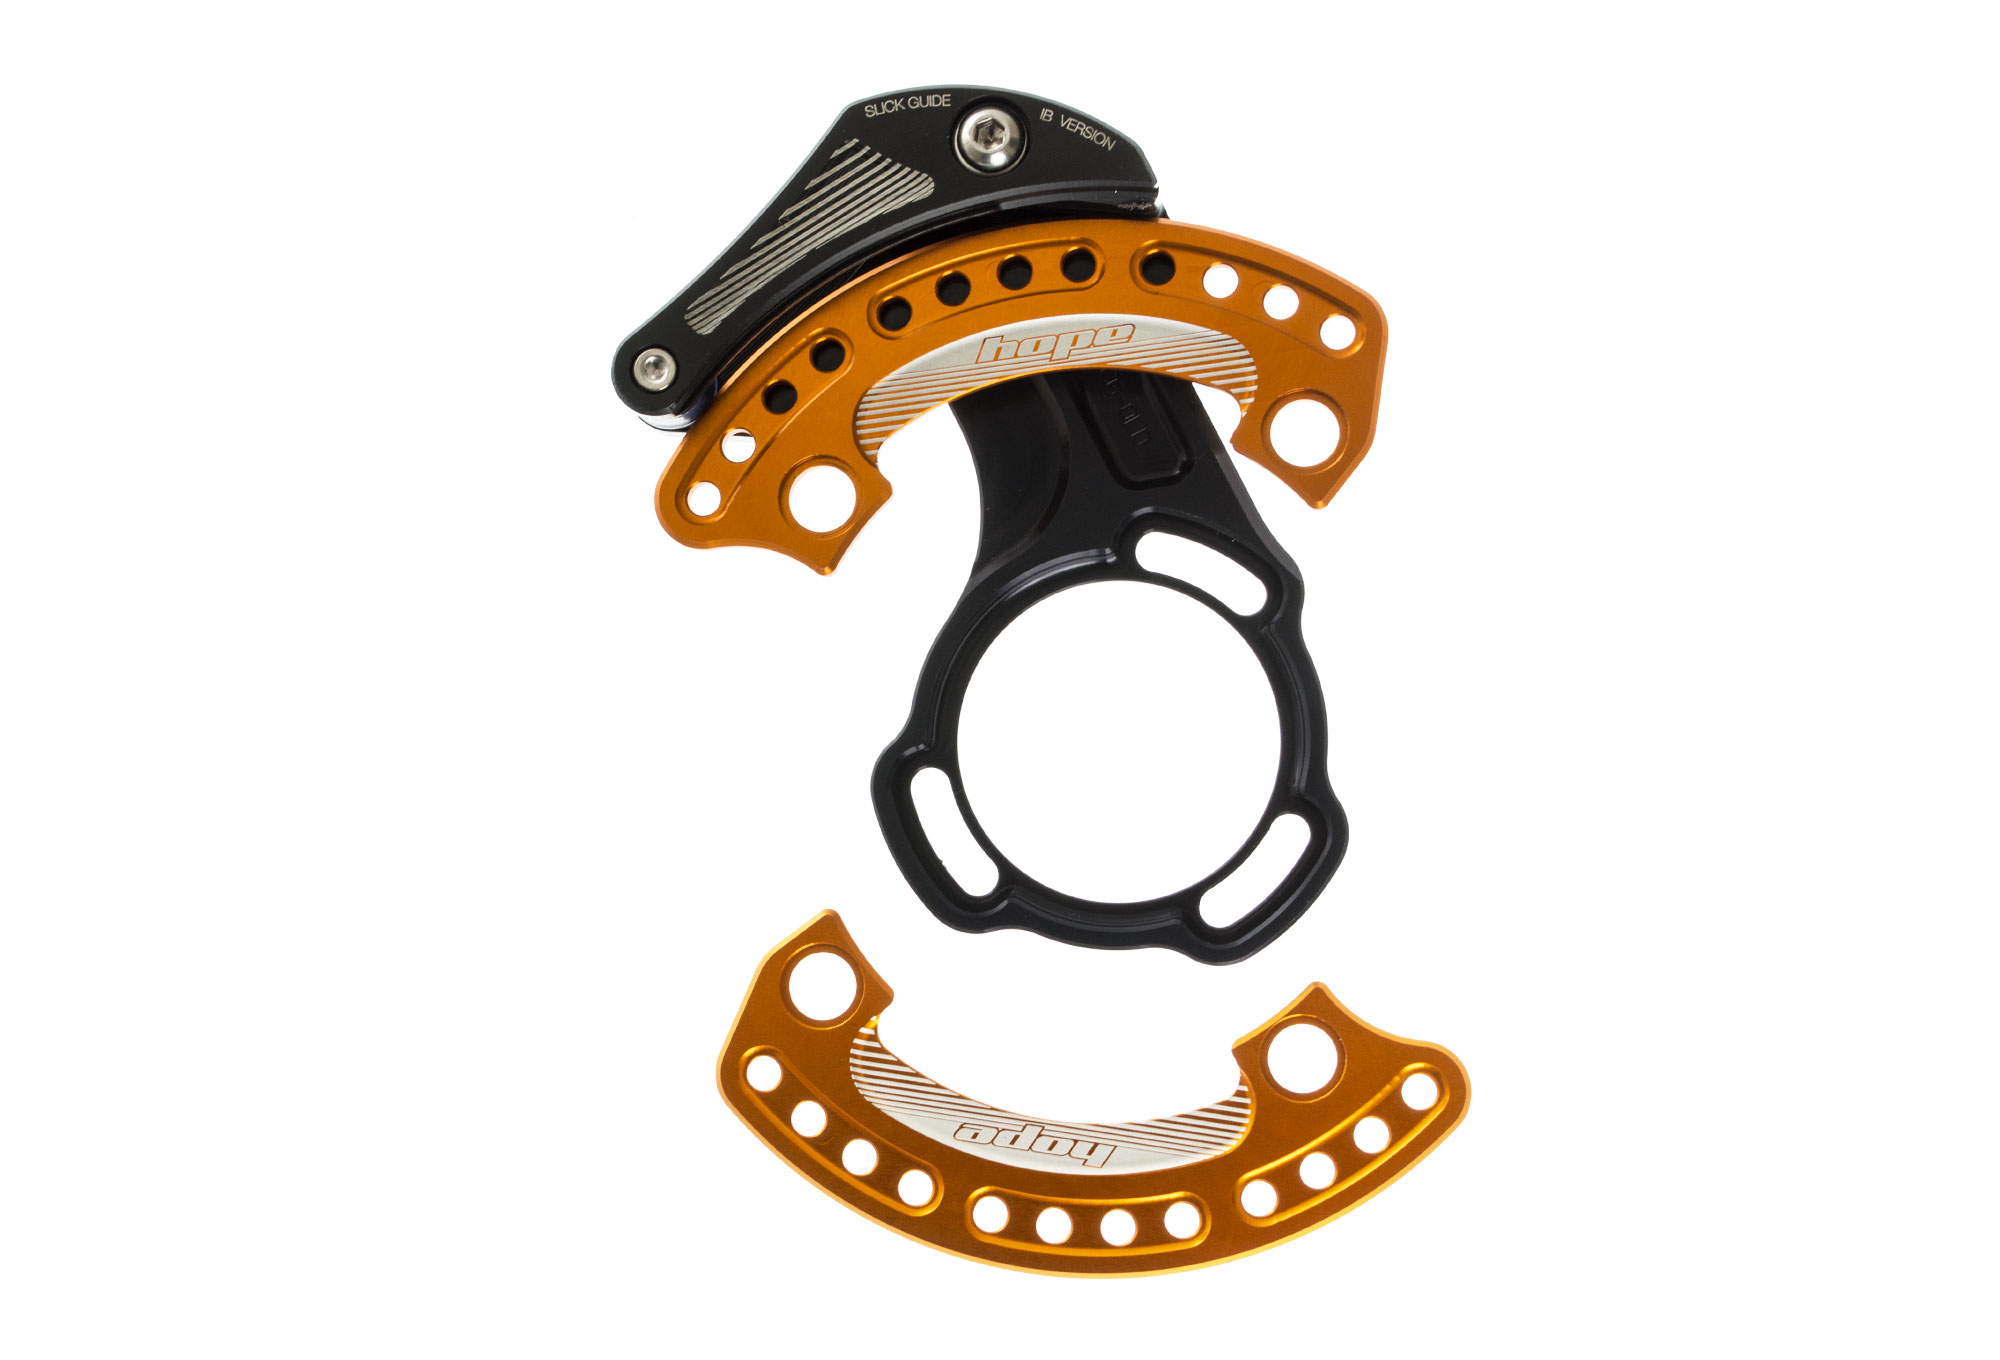 f7a098b9216 Hope Slick Chainguide With Bash Guard - Orange ISCG OLD